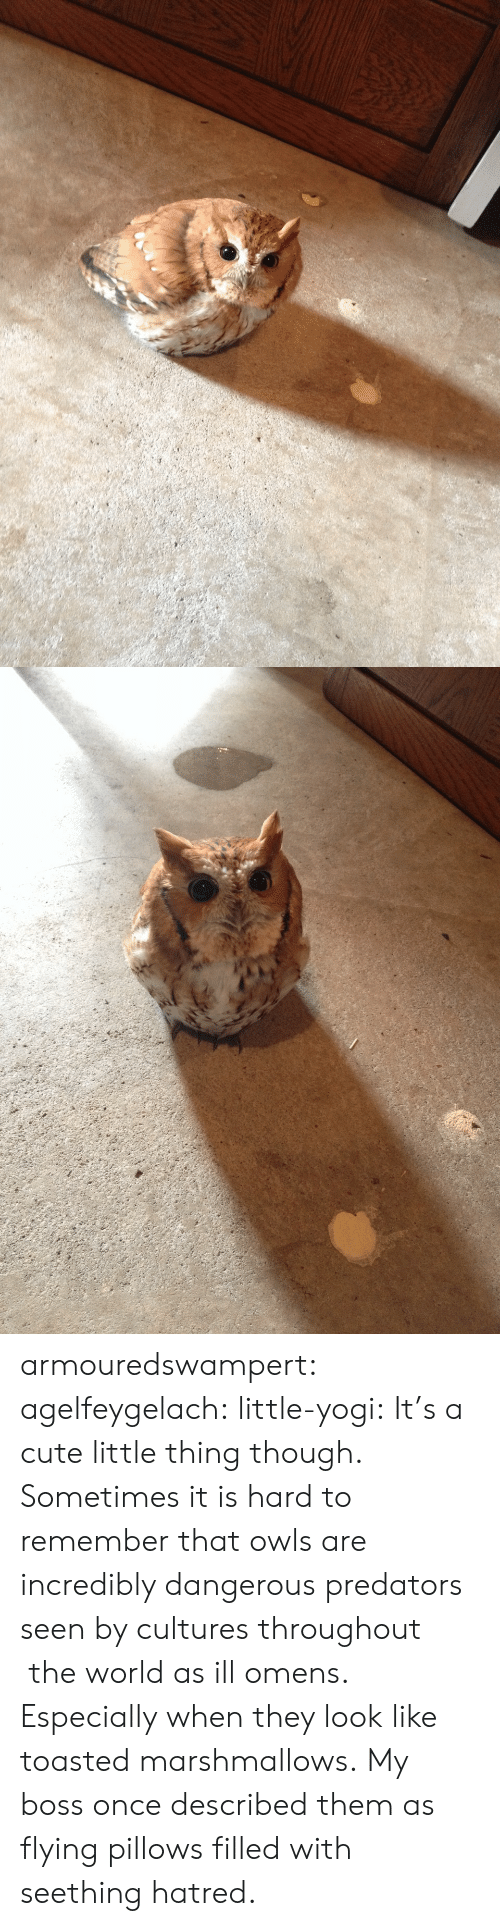 Cute, Tumblr, and Blog: armouredswampert: agelfeygelach:  little-yogi:  It's a cute little thing though.  Sometimes it is hard to remember that owls are incredibly dangerous predators seen by cultures throughout the world as ill omens. Especially when they look like toasted marshmallows.  My boss once described them as flying pillows filled with seething hatred.